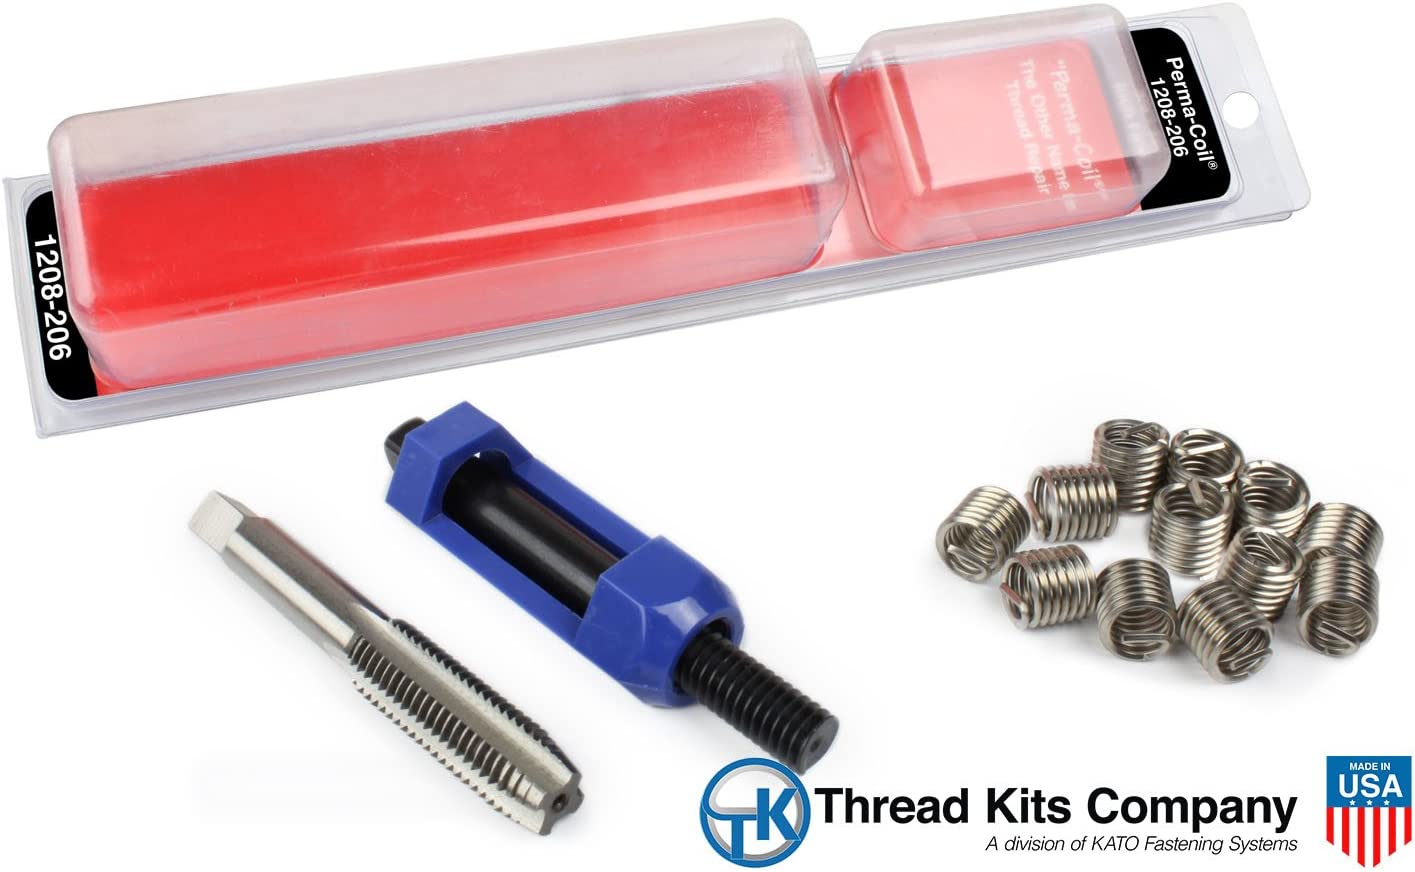 1208-205 Thread Repair Kit Thread Kits